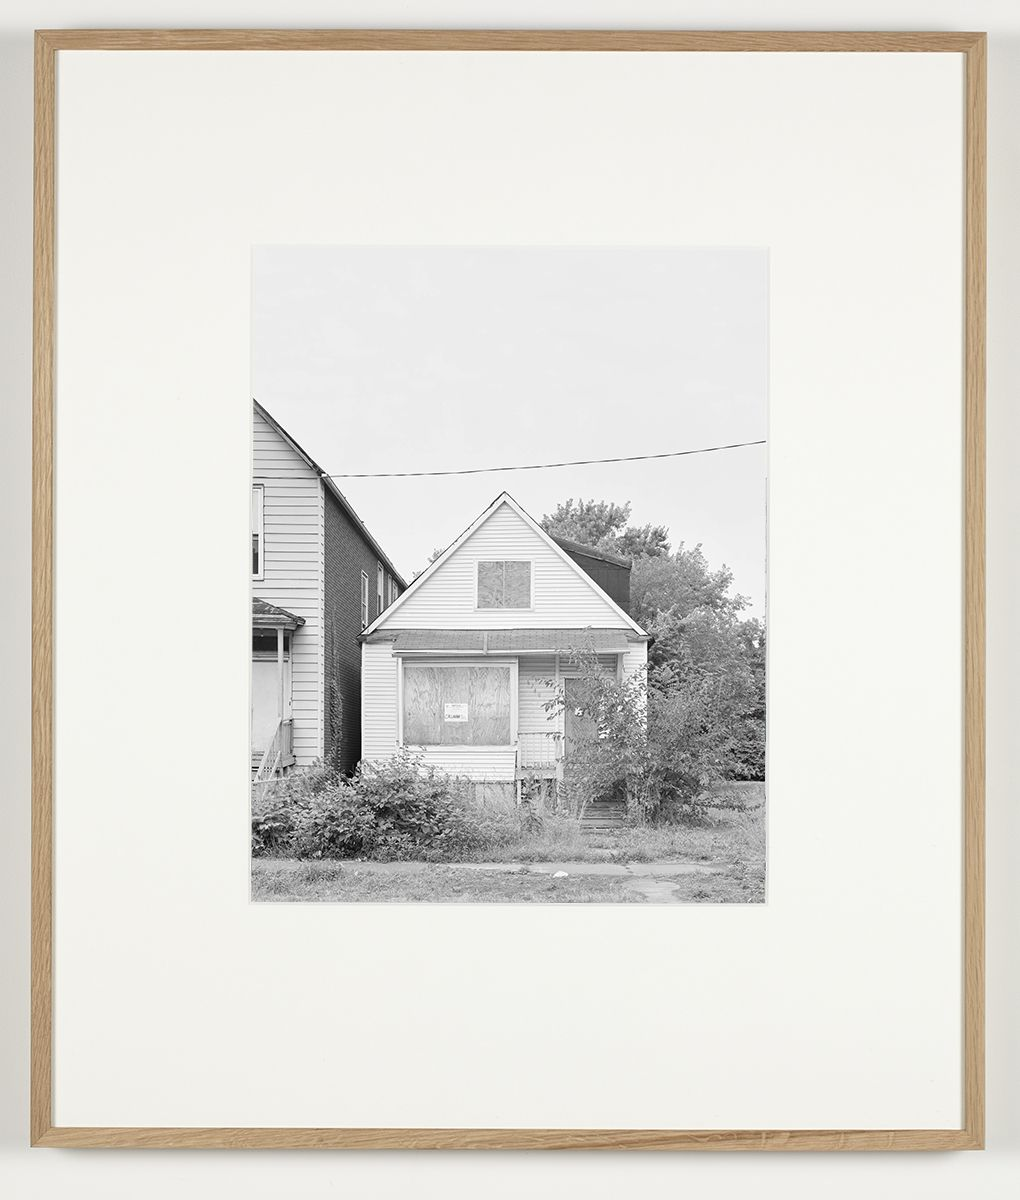 Some Boarded Up Houses   Chicago #9, 2009-2013  Silver gelatin print  27 x  22 5/8 inches (68.6 x 57.5 cm)